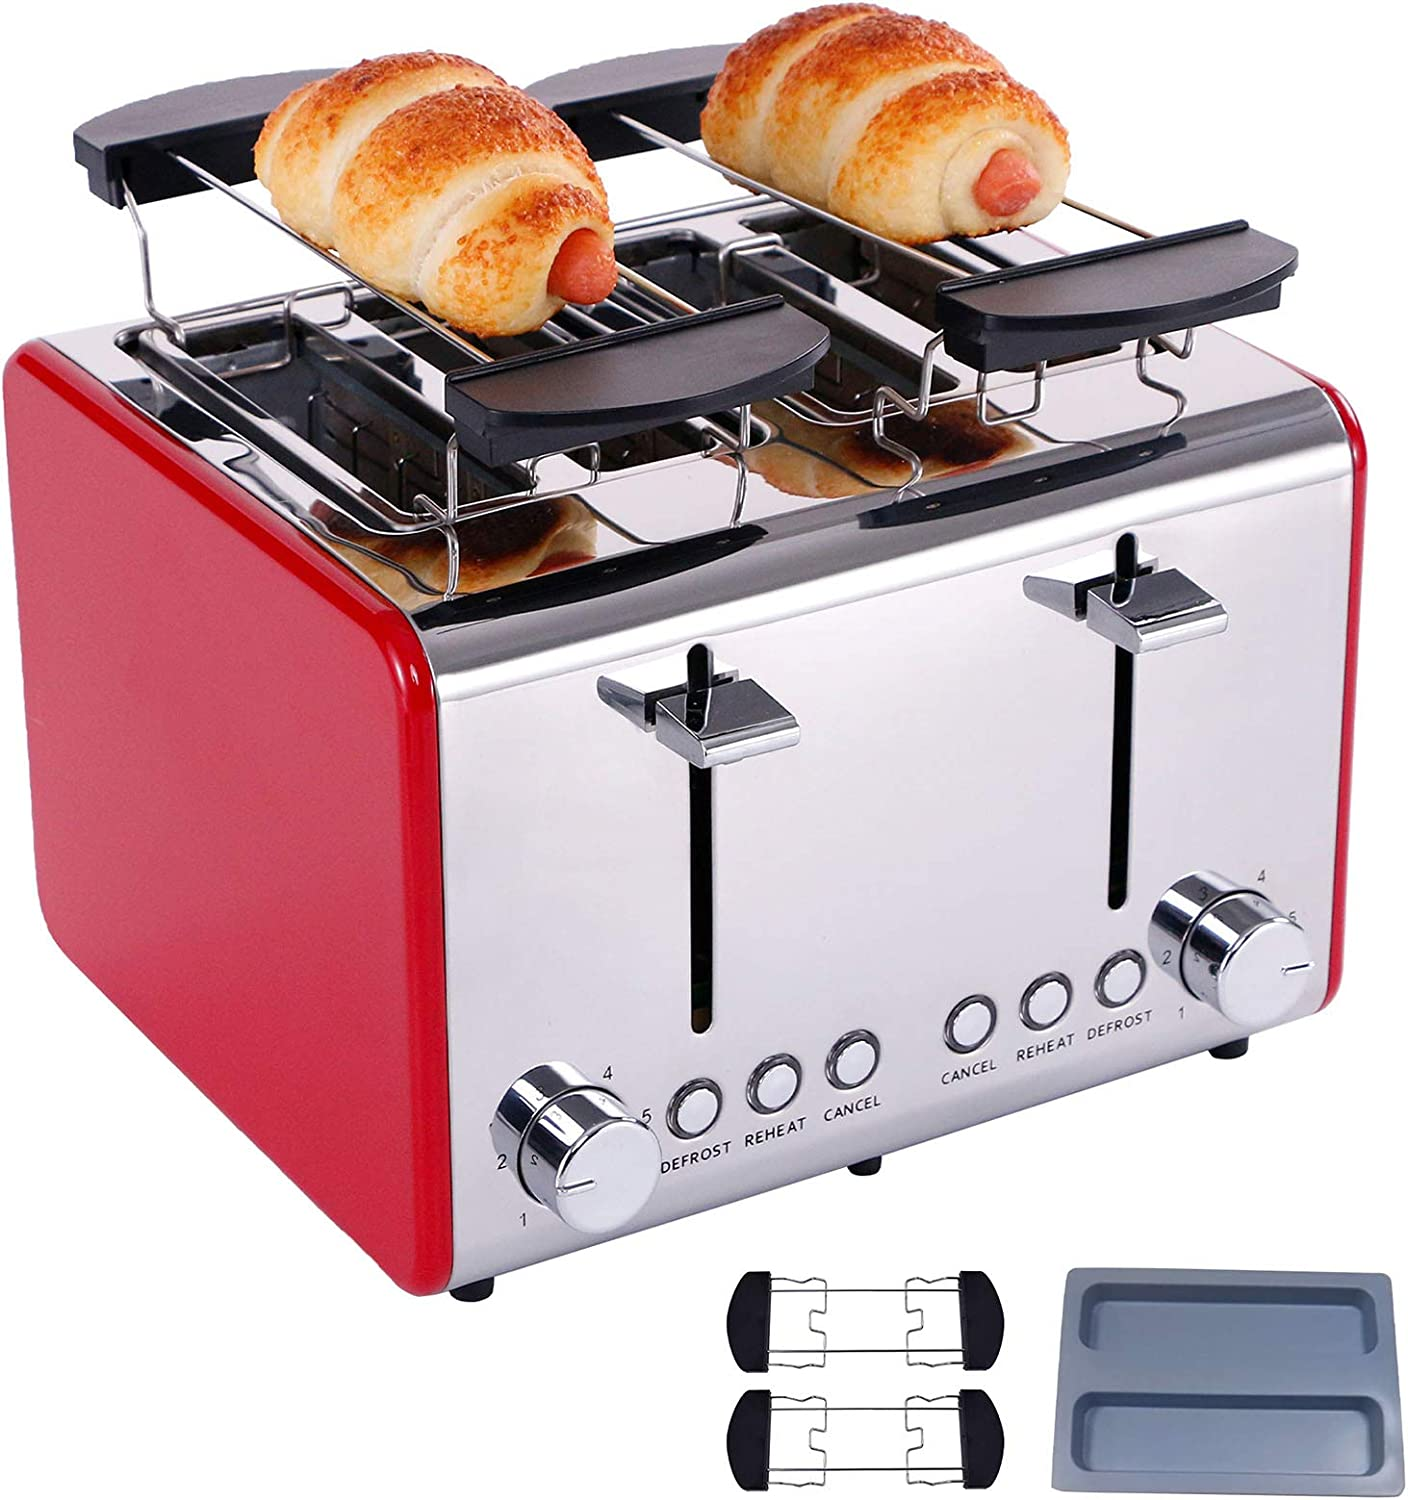 Toaster 4 slice,Extra-Wide Slot Toaster,6 Bread Shade Settings,Stainless Steel Toaster with Bagel,Reheat,Cancel, Defrost Function,Removable Crumb Tray (toaster 4 slice red)